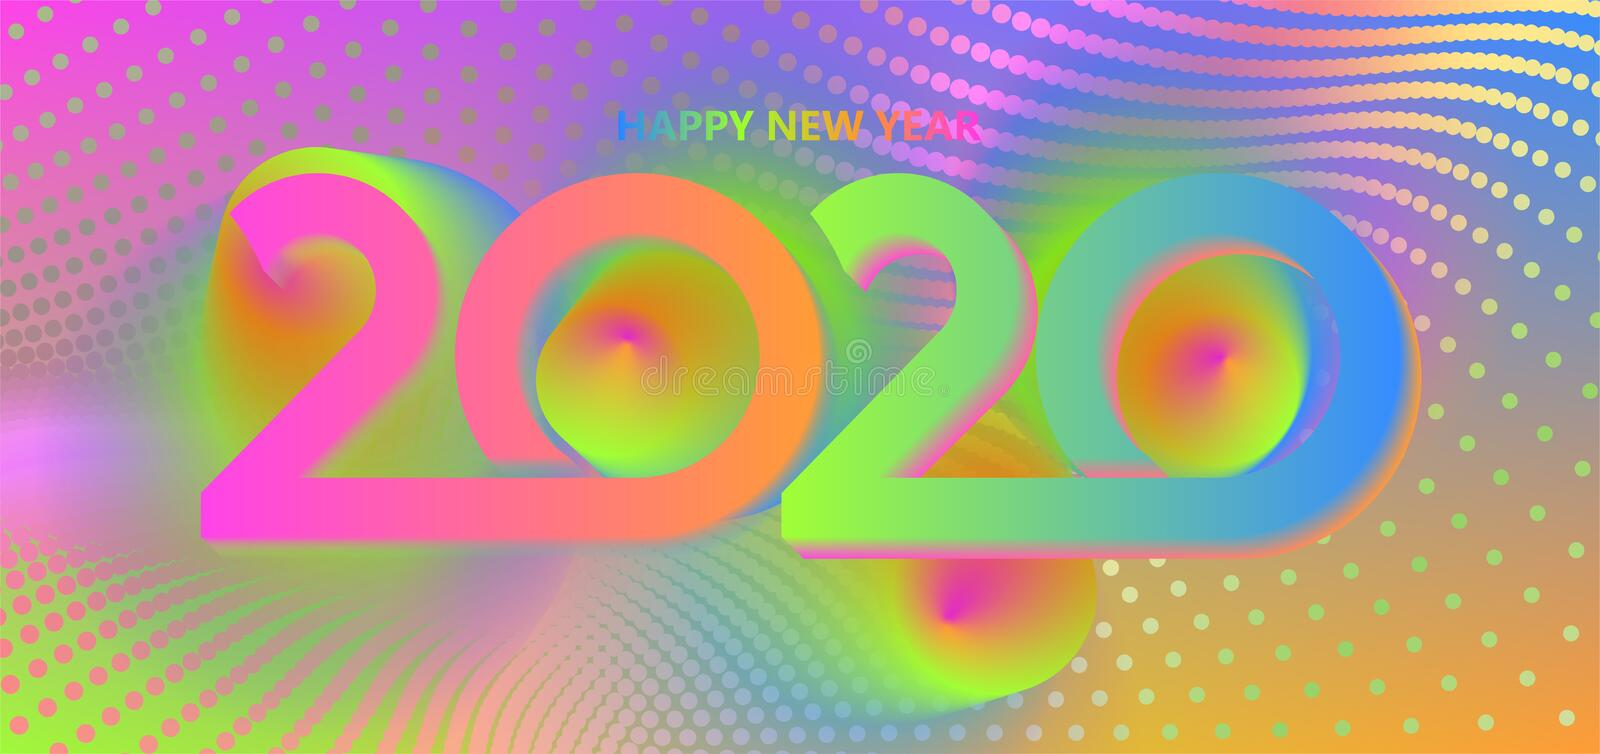 2020 Happy New Year background. Retro line design for typography, printing products, flyer, brochure covers or. Invitation cards. Vector illustration. EPS10 vector illustration